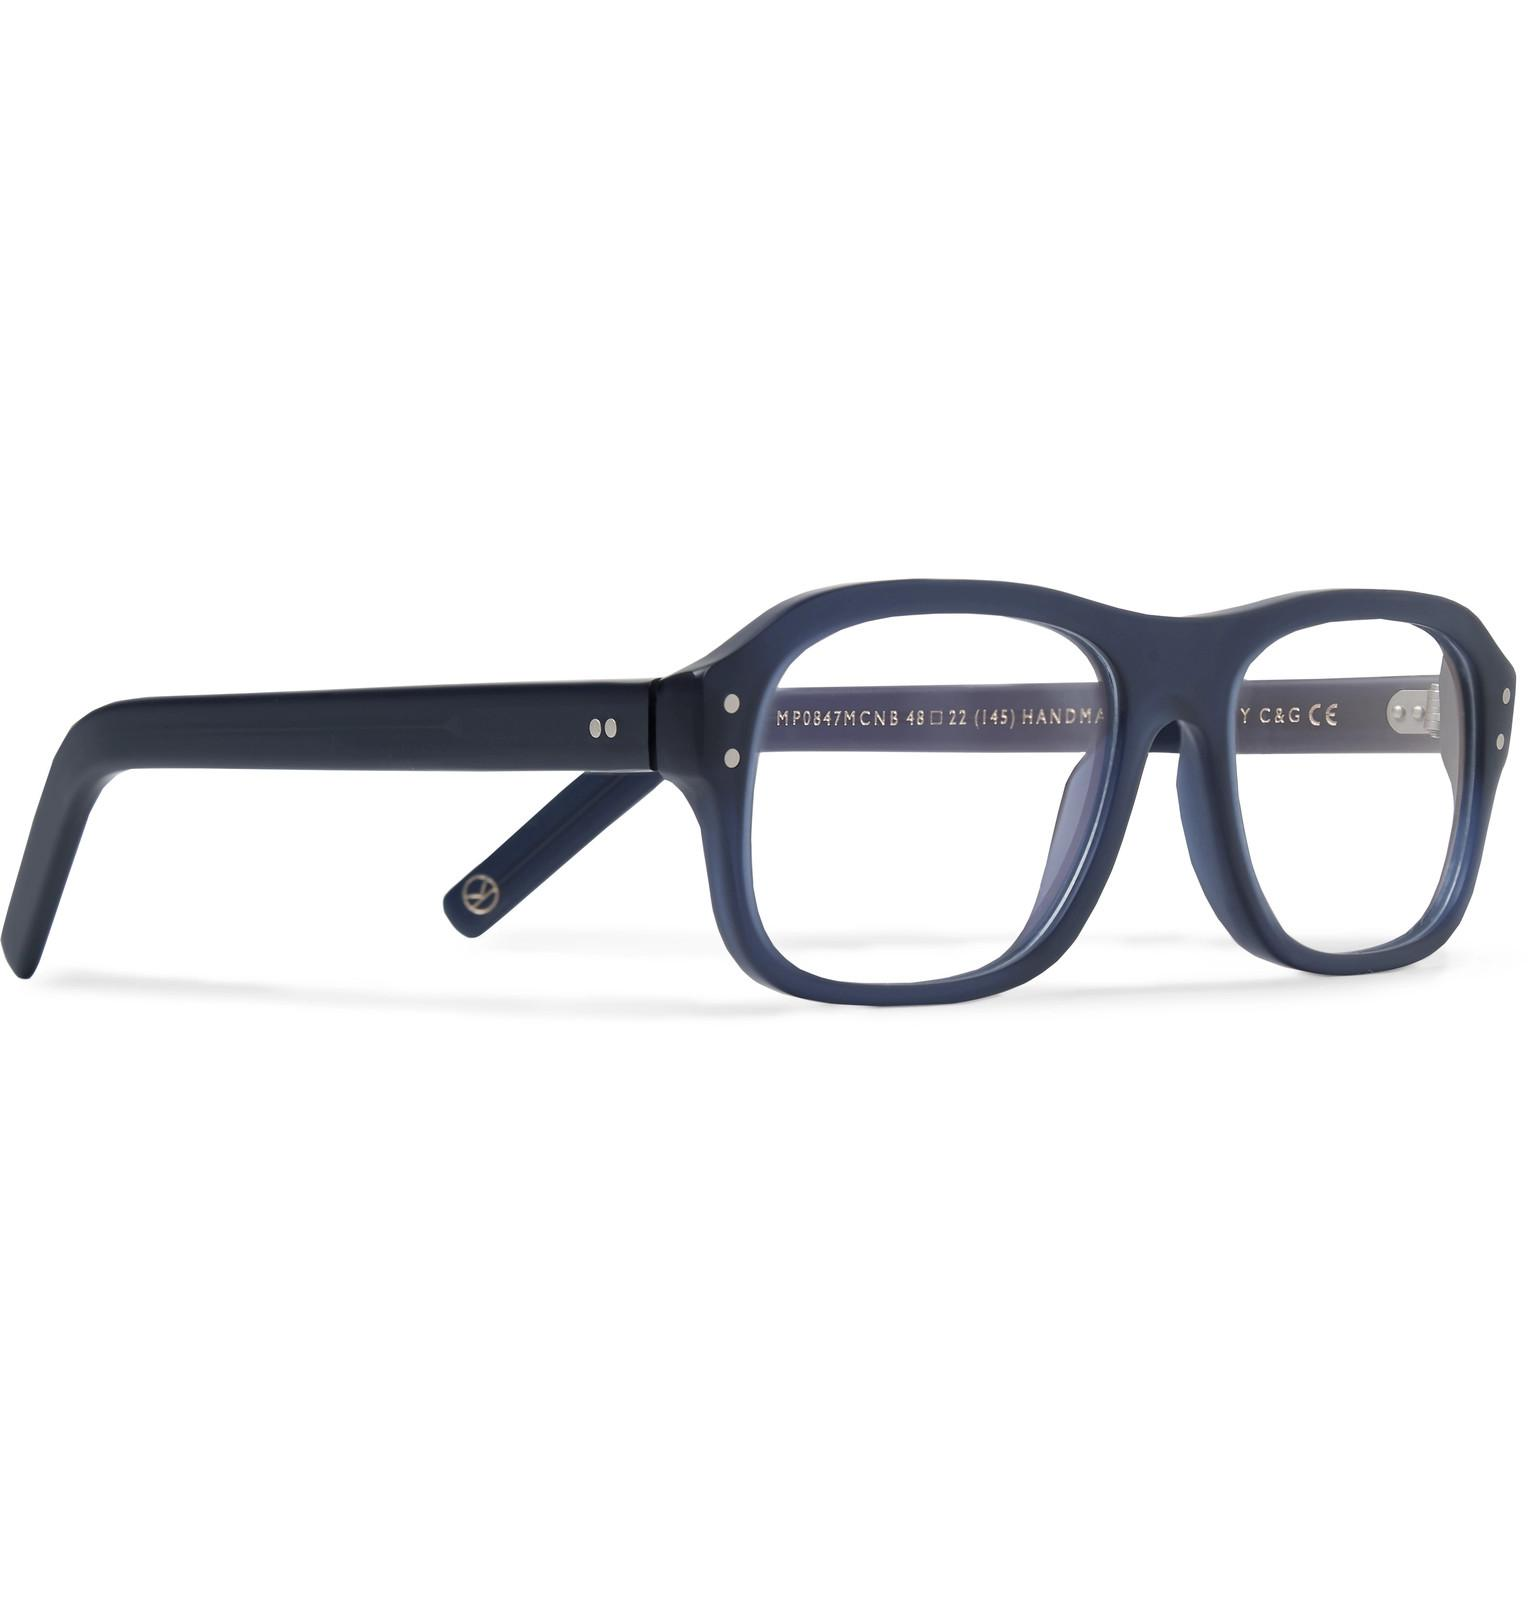 fbae7a4078c Kingsman - Blue + Cutler And Gross Eggsy s Square-frame Acetate Optical  Glasses for Men. View fullscreen